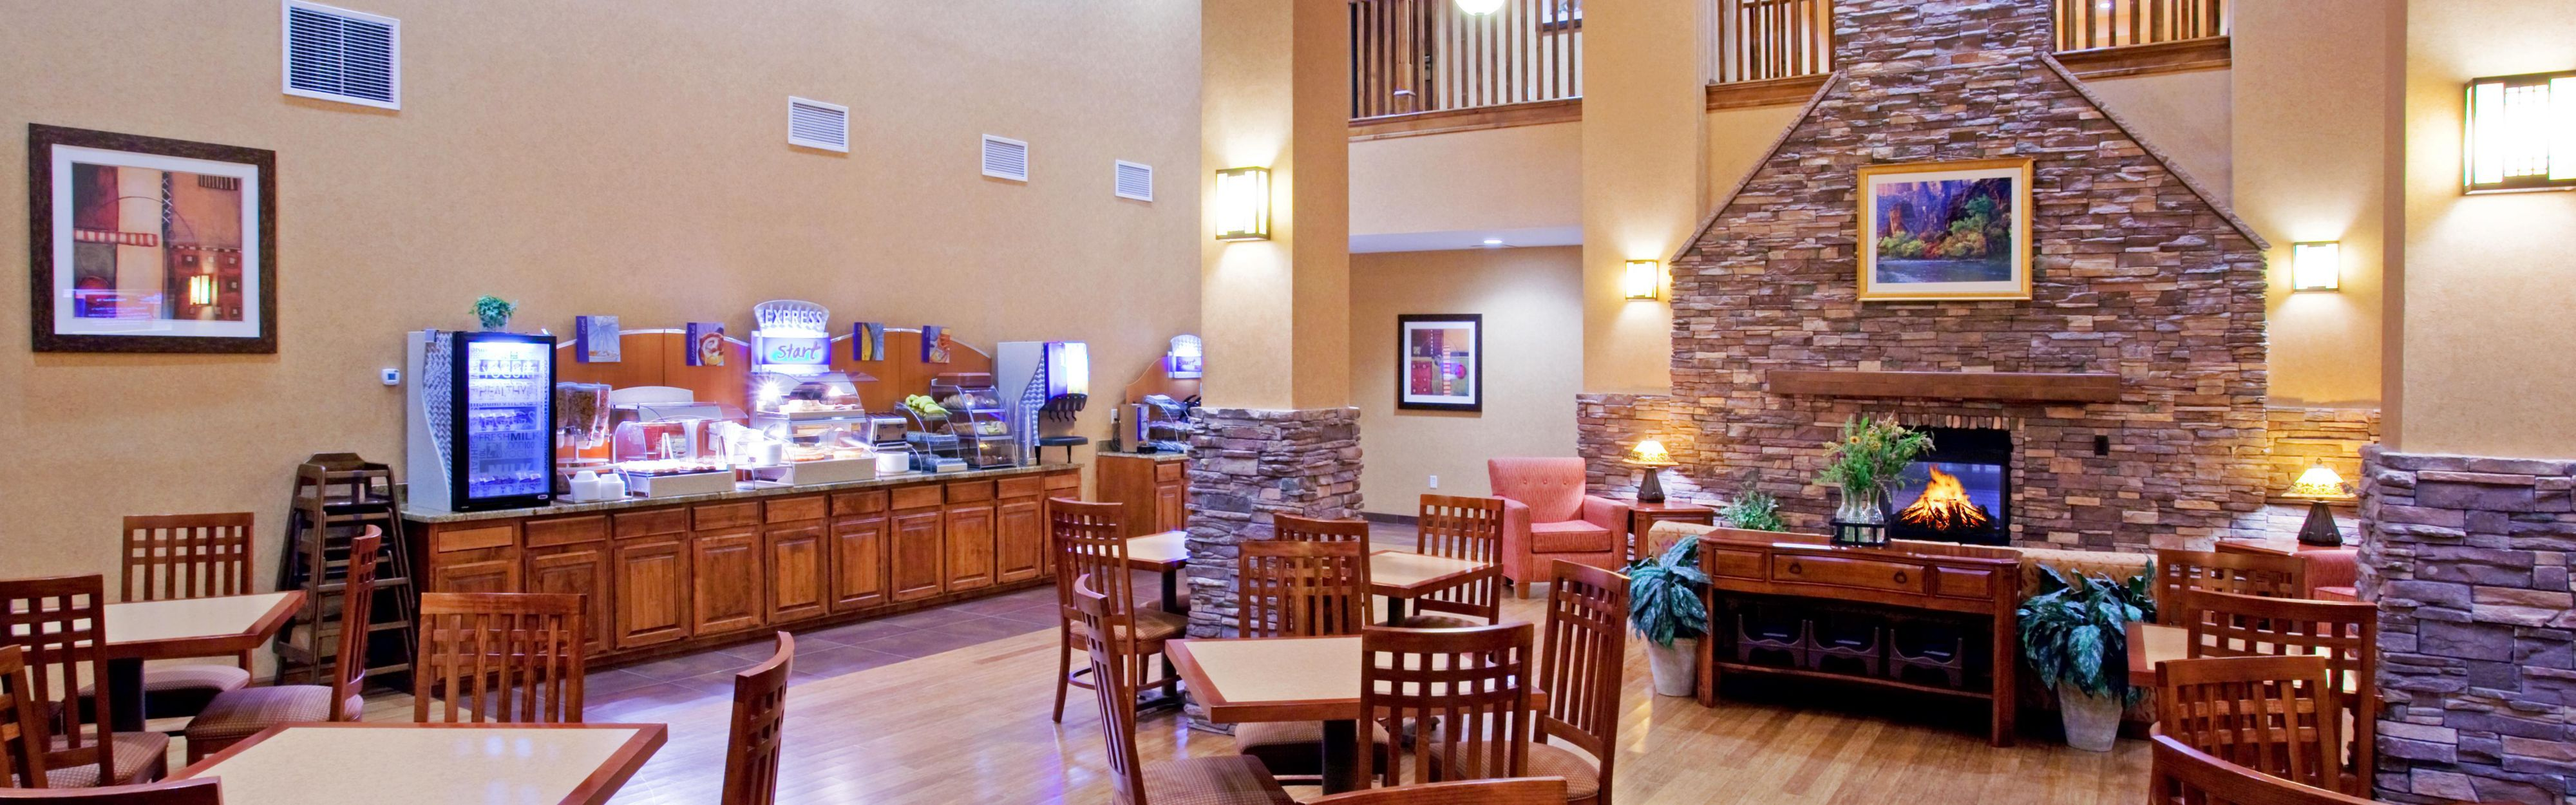 Holiday Inn Express & Suites St. George North - Zion image 3